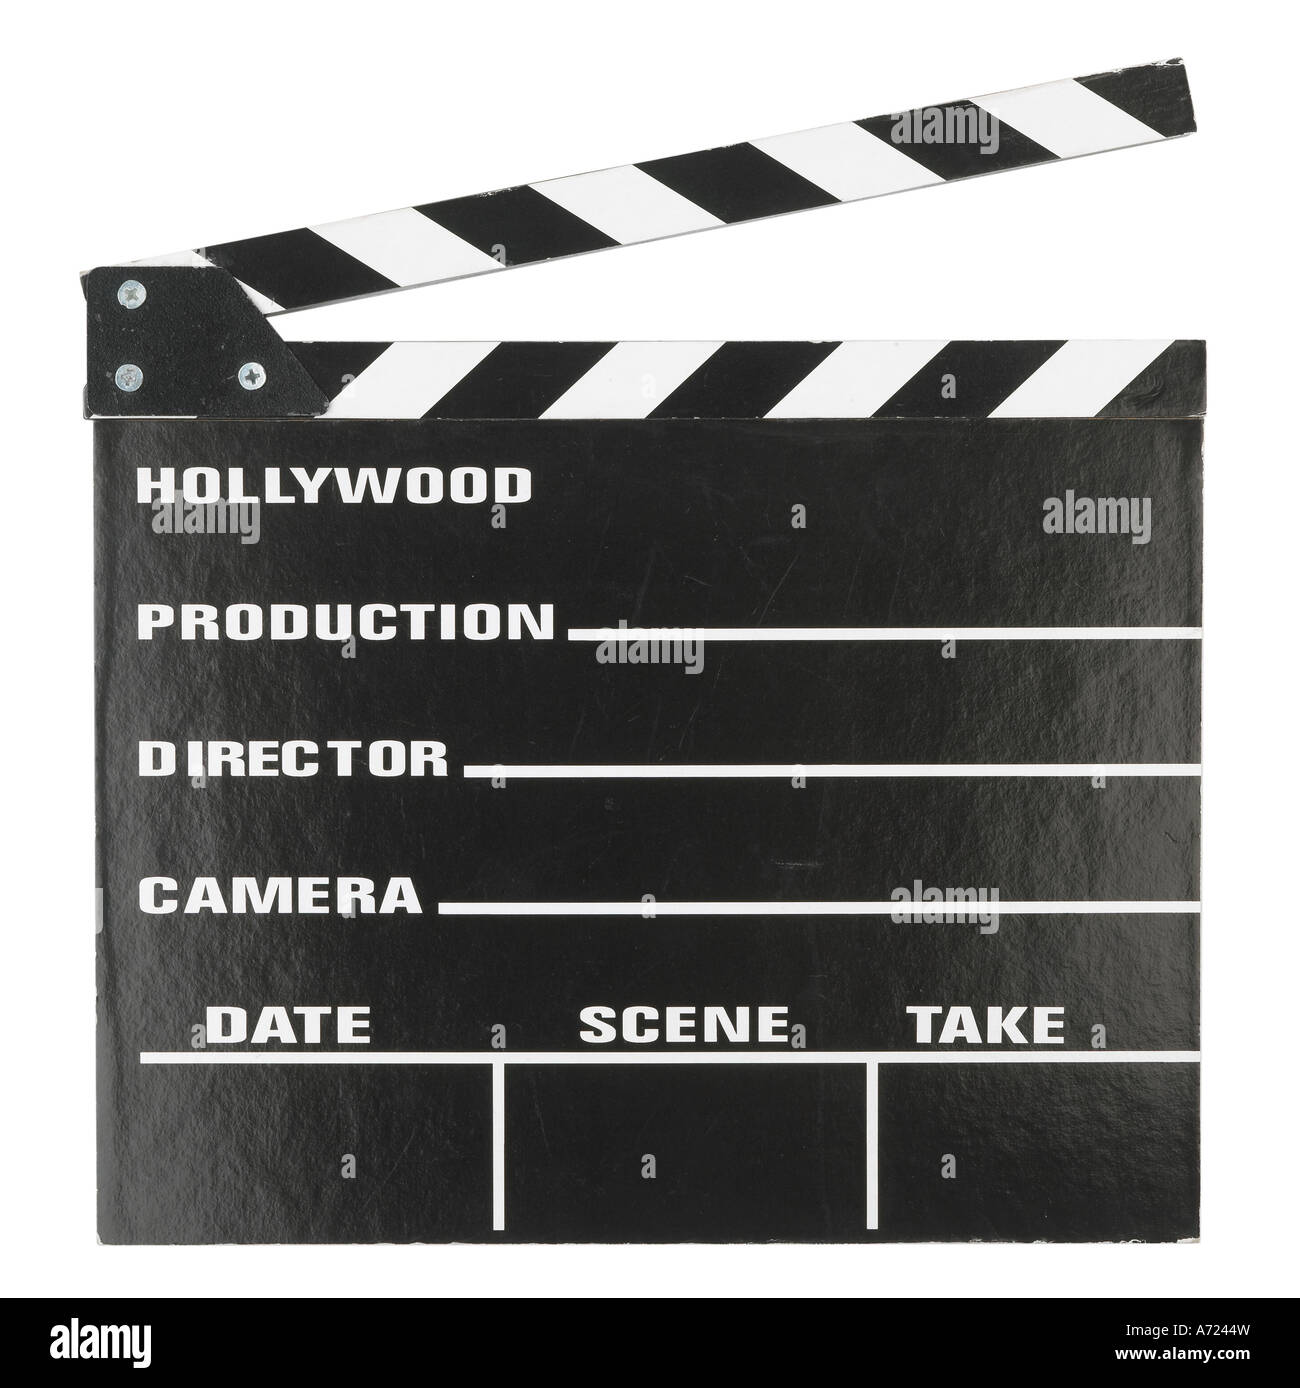 clapper board for film takes The Movies - Stock Image